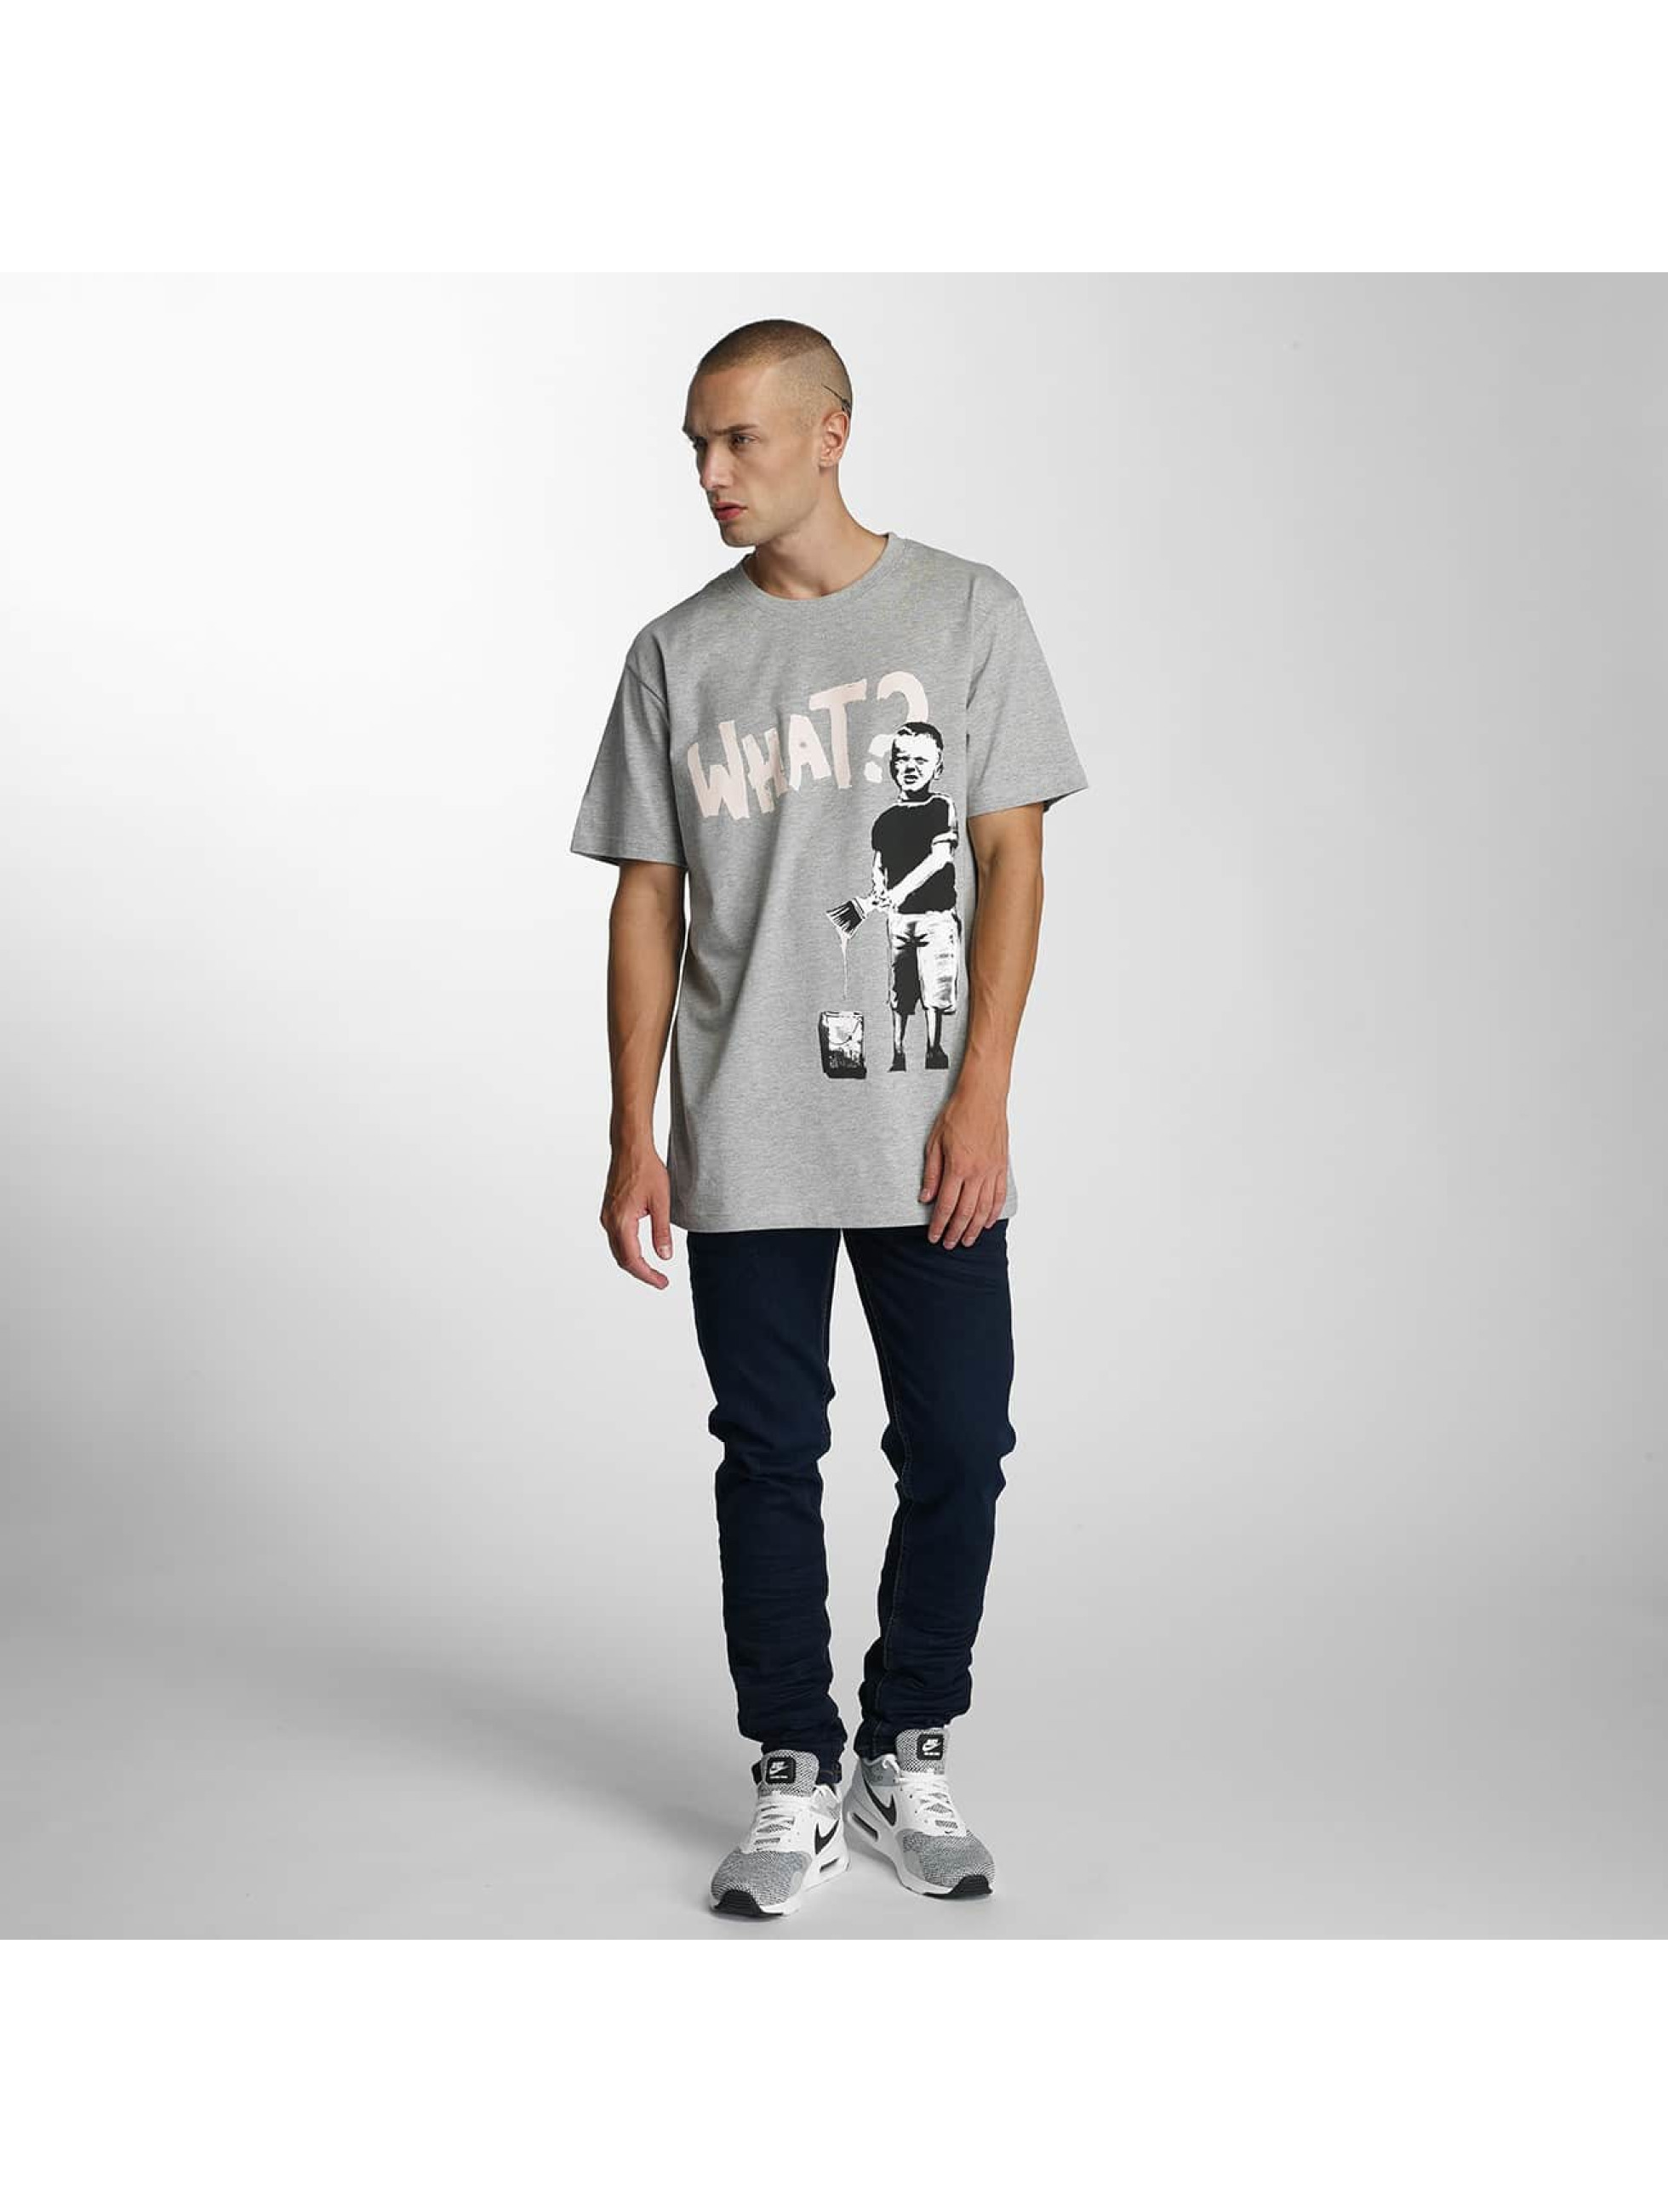 Merchcode Camiseta Banksy What Boy gris